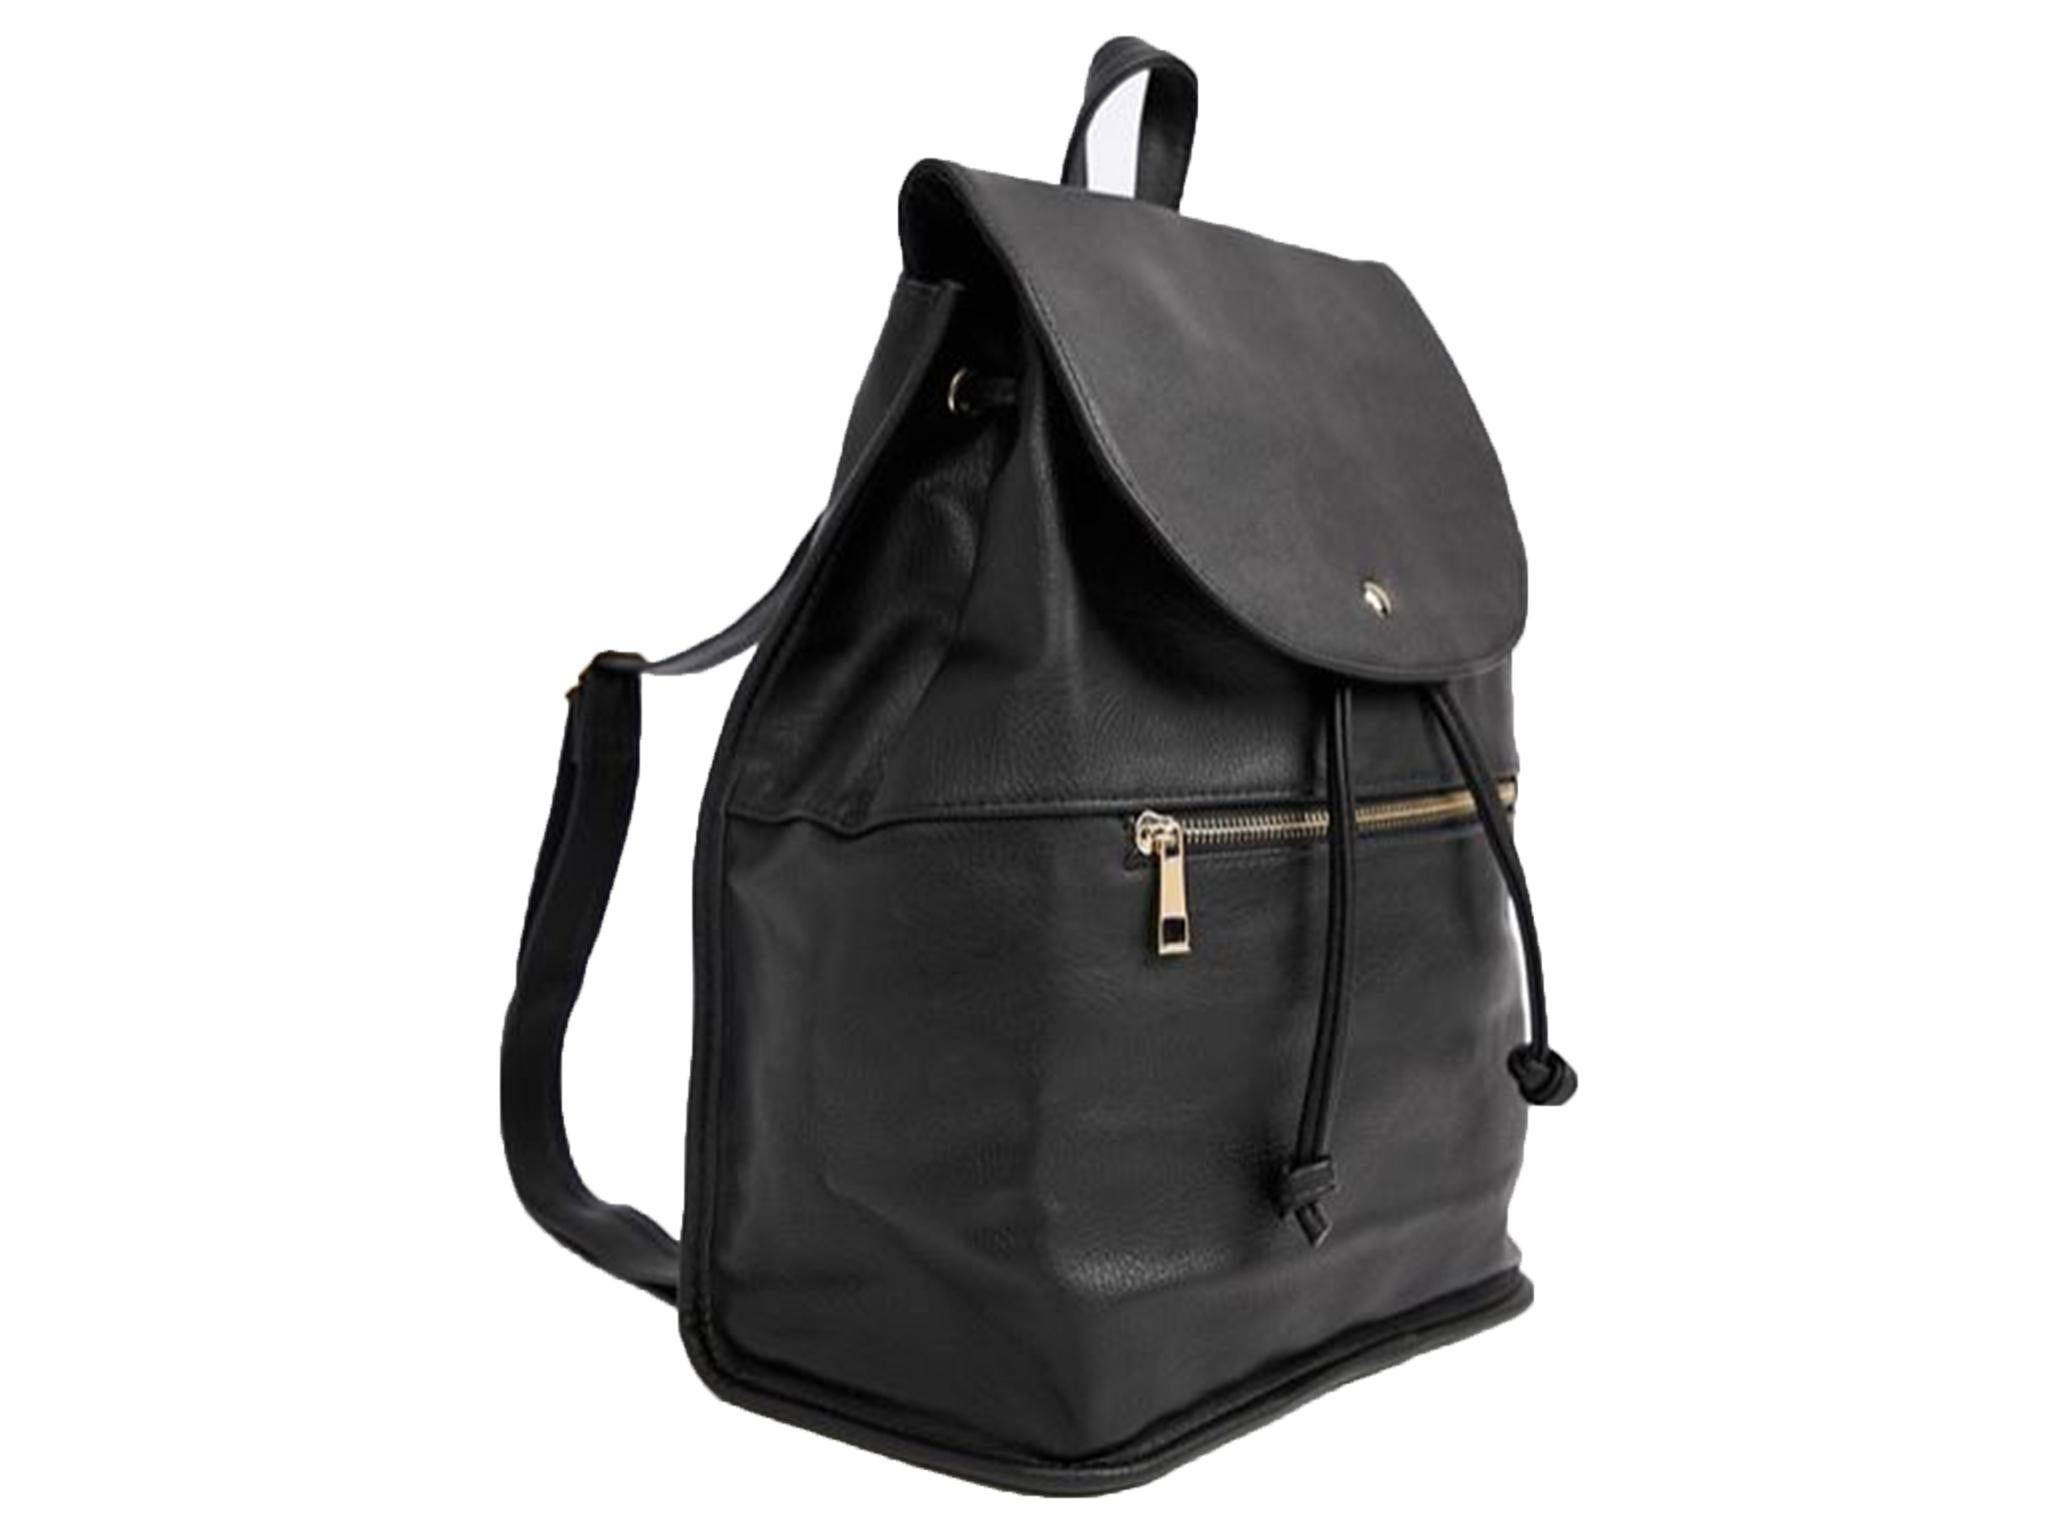 534479801f76 This backpack from ASOS is adorable.